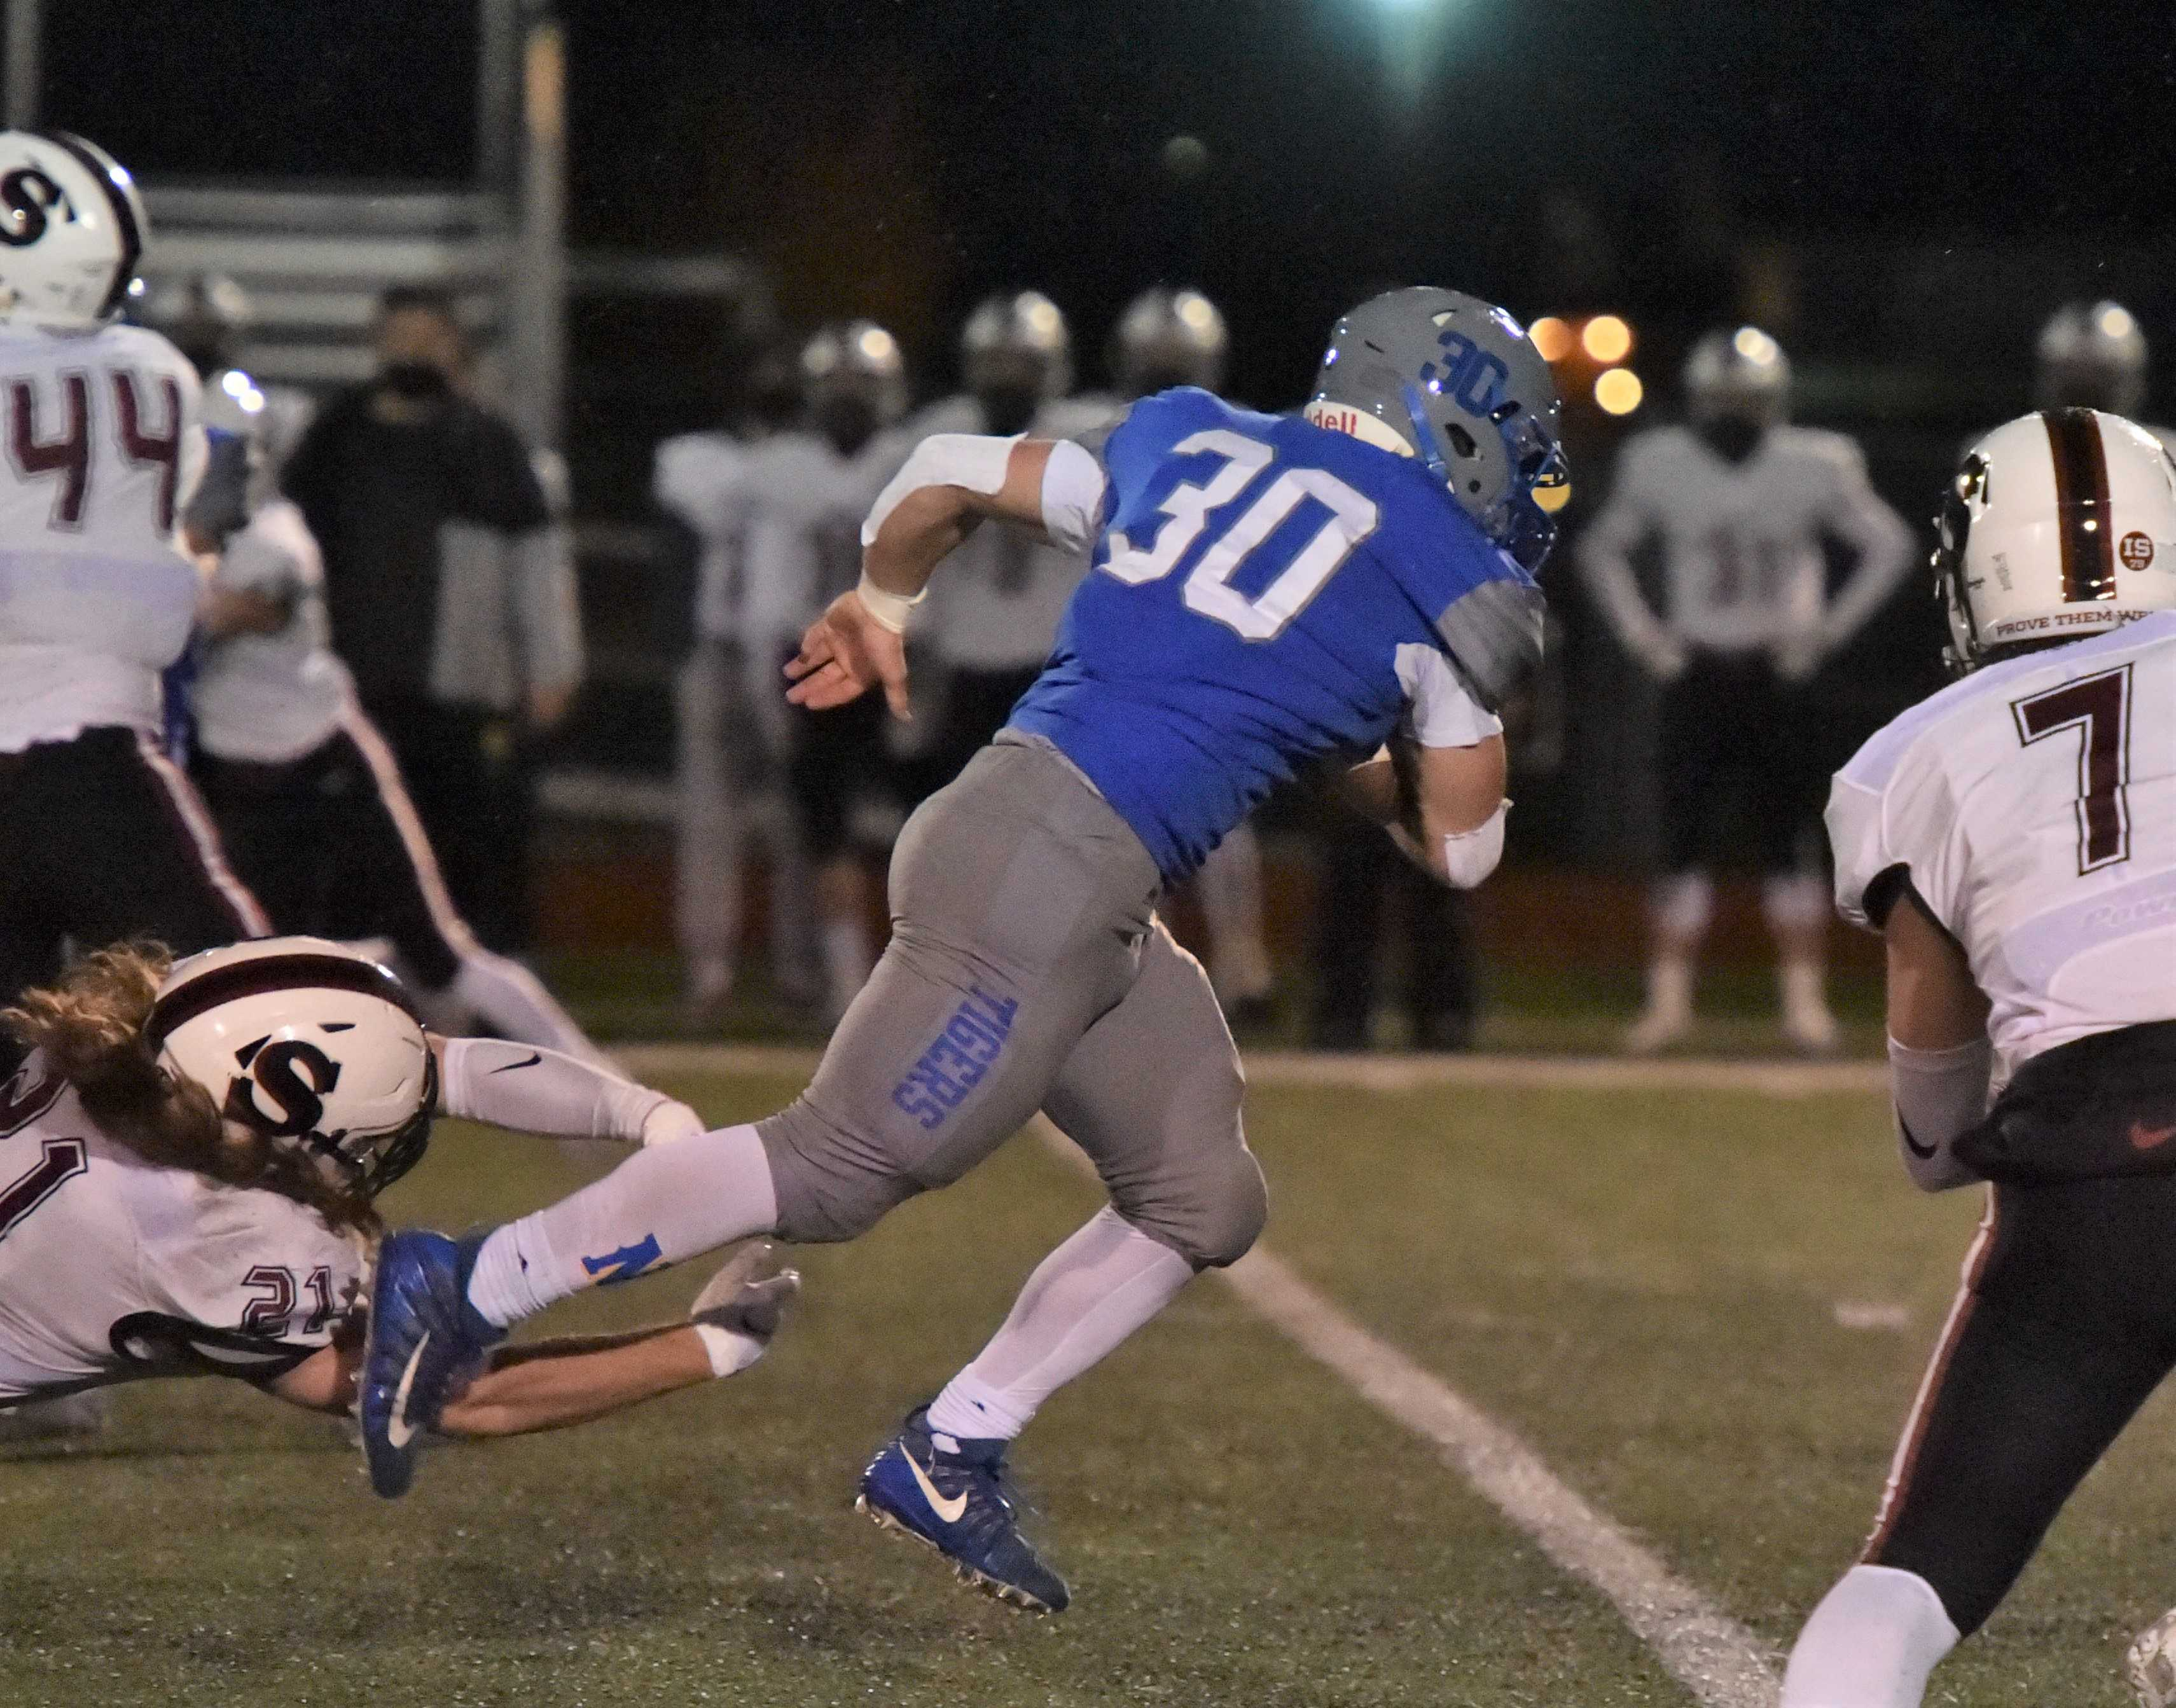 Newberg junior Price Pothier (5-6, 180) has rushed for 701 yards and 10 touchdowns. (Photo by Dean Takahashi)